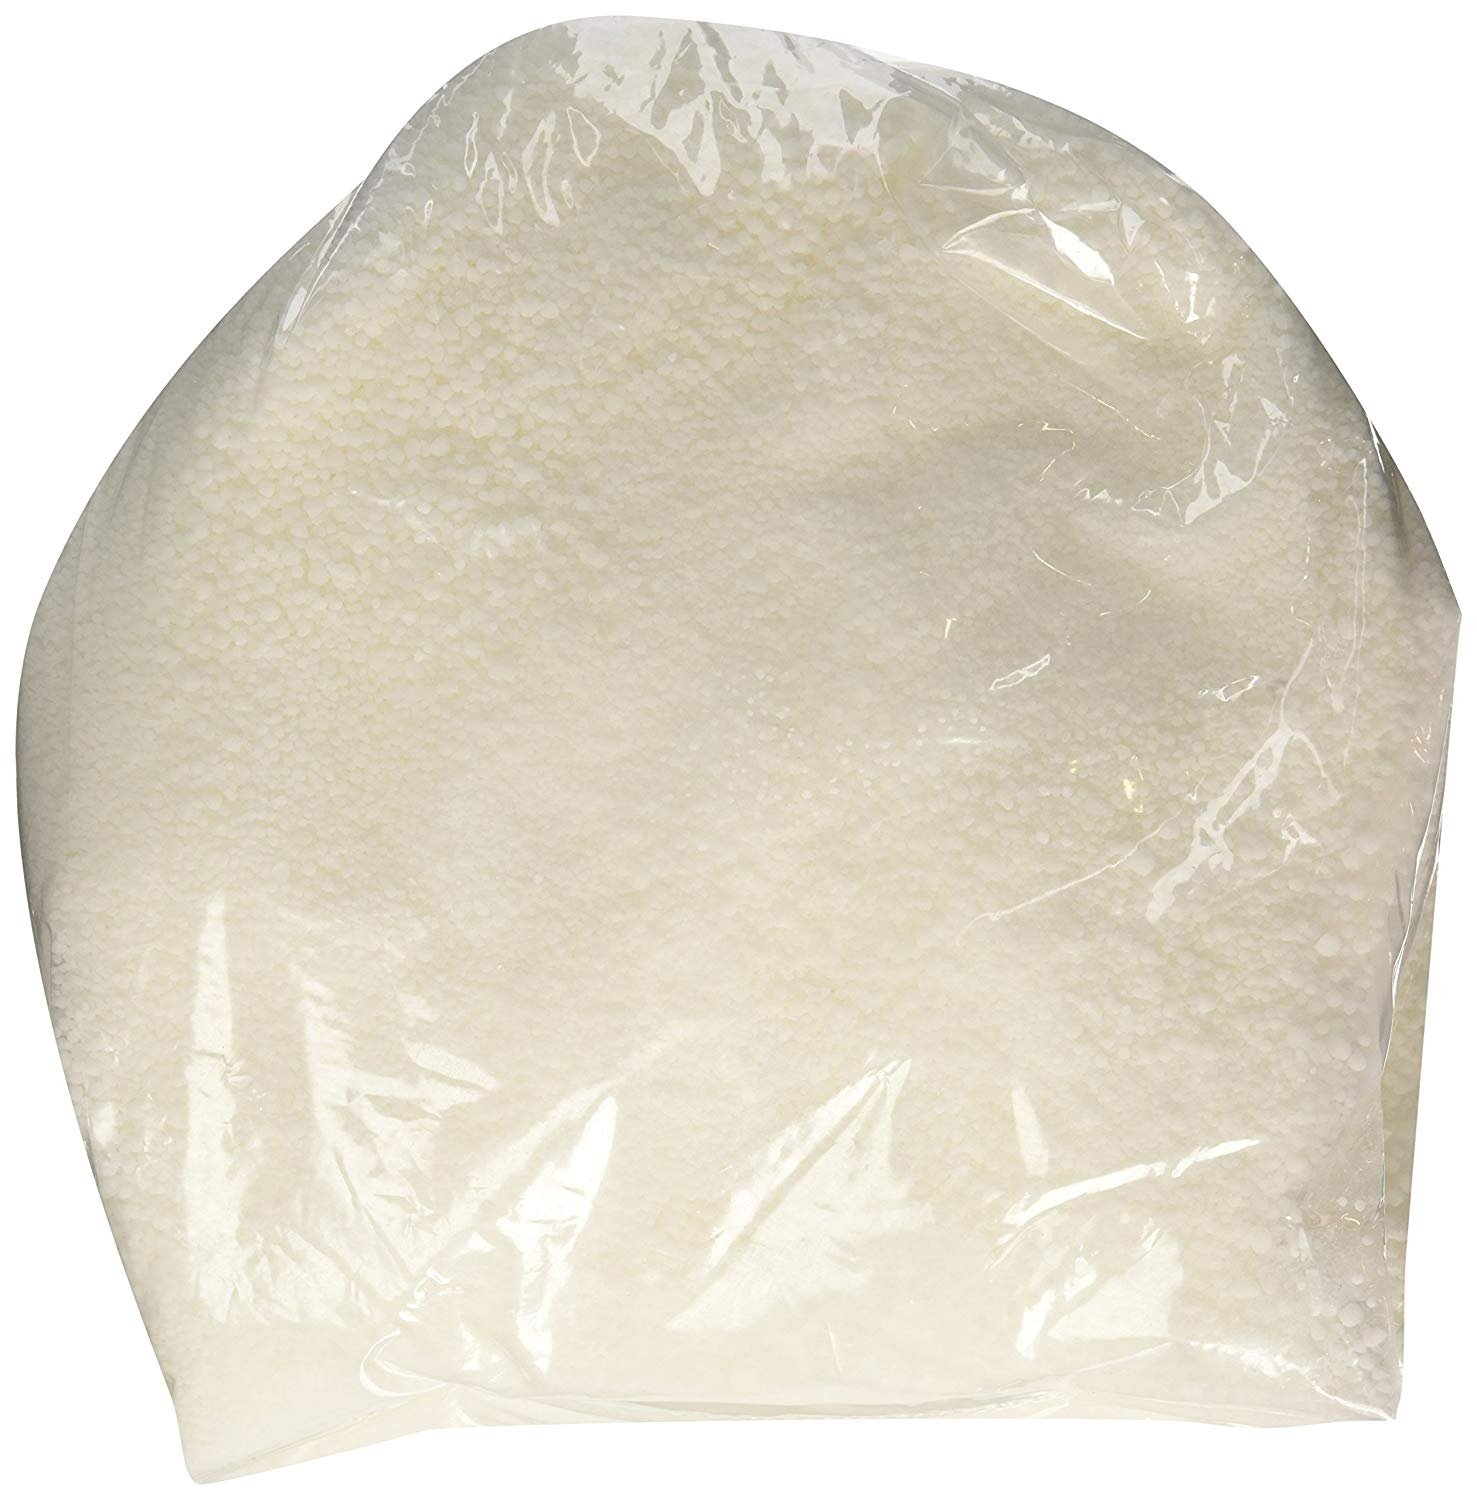 Oasis Supply Isomalt Crystals (10 Pounds) by Oasis Supply